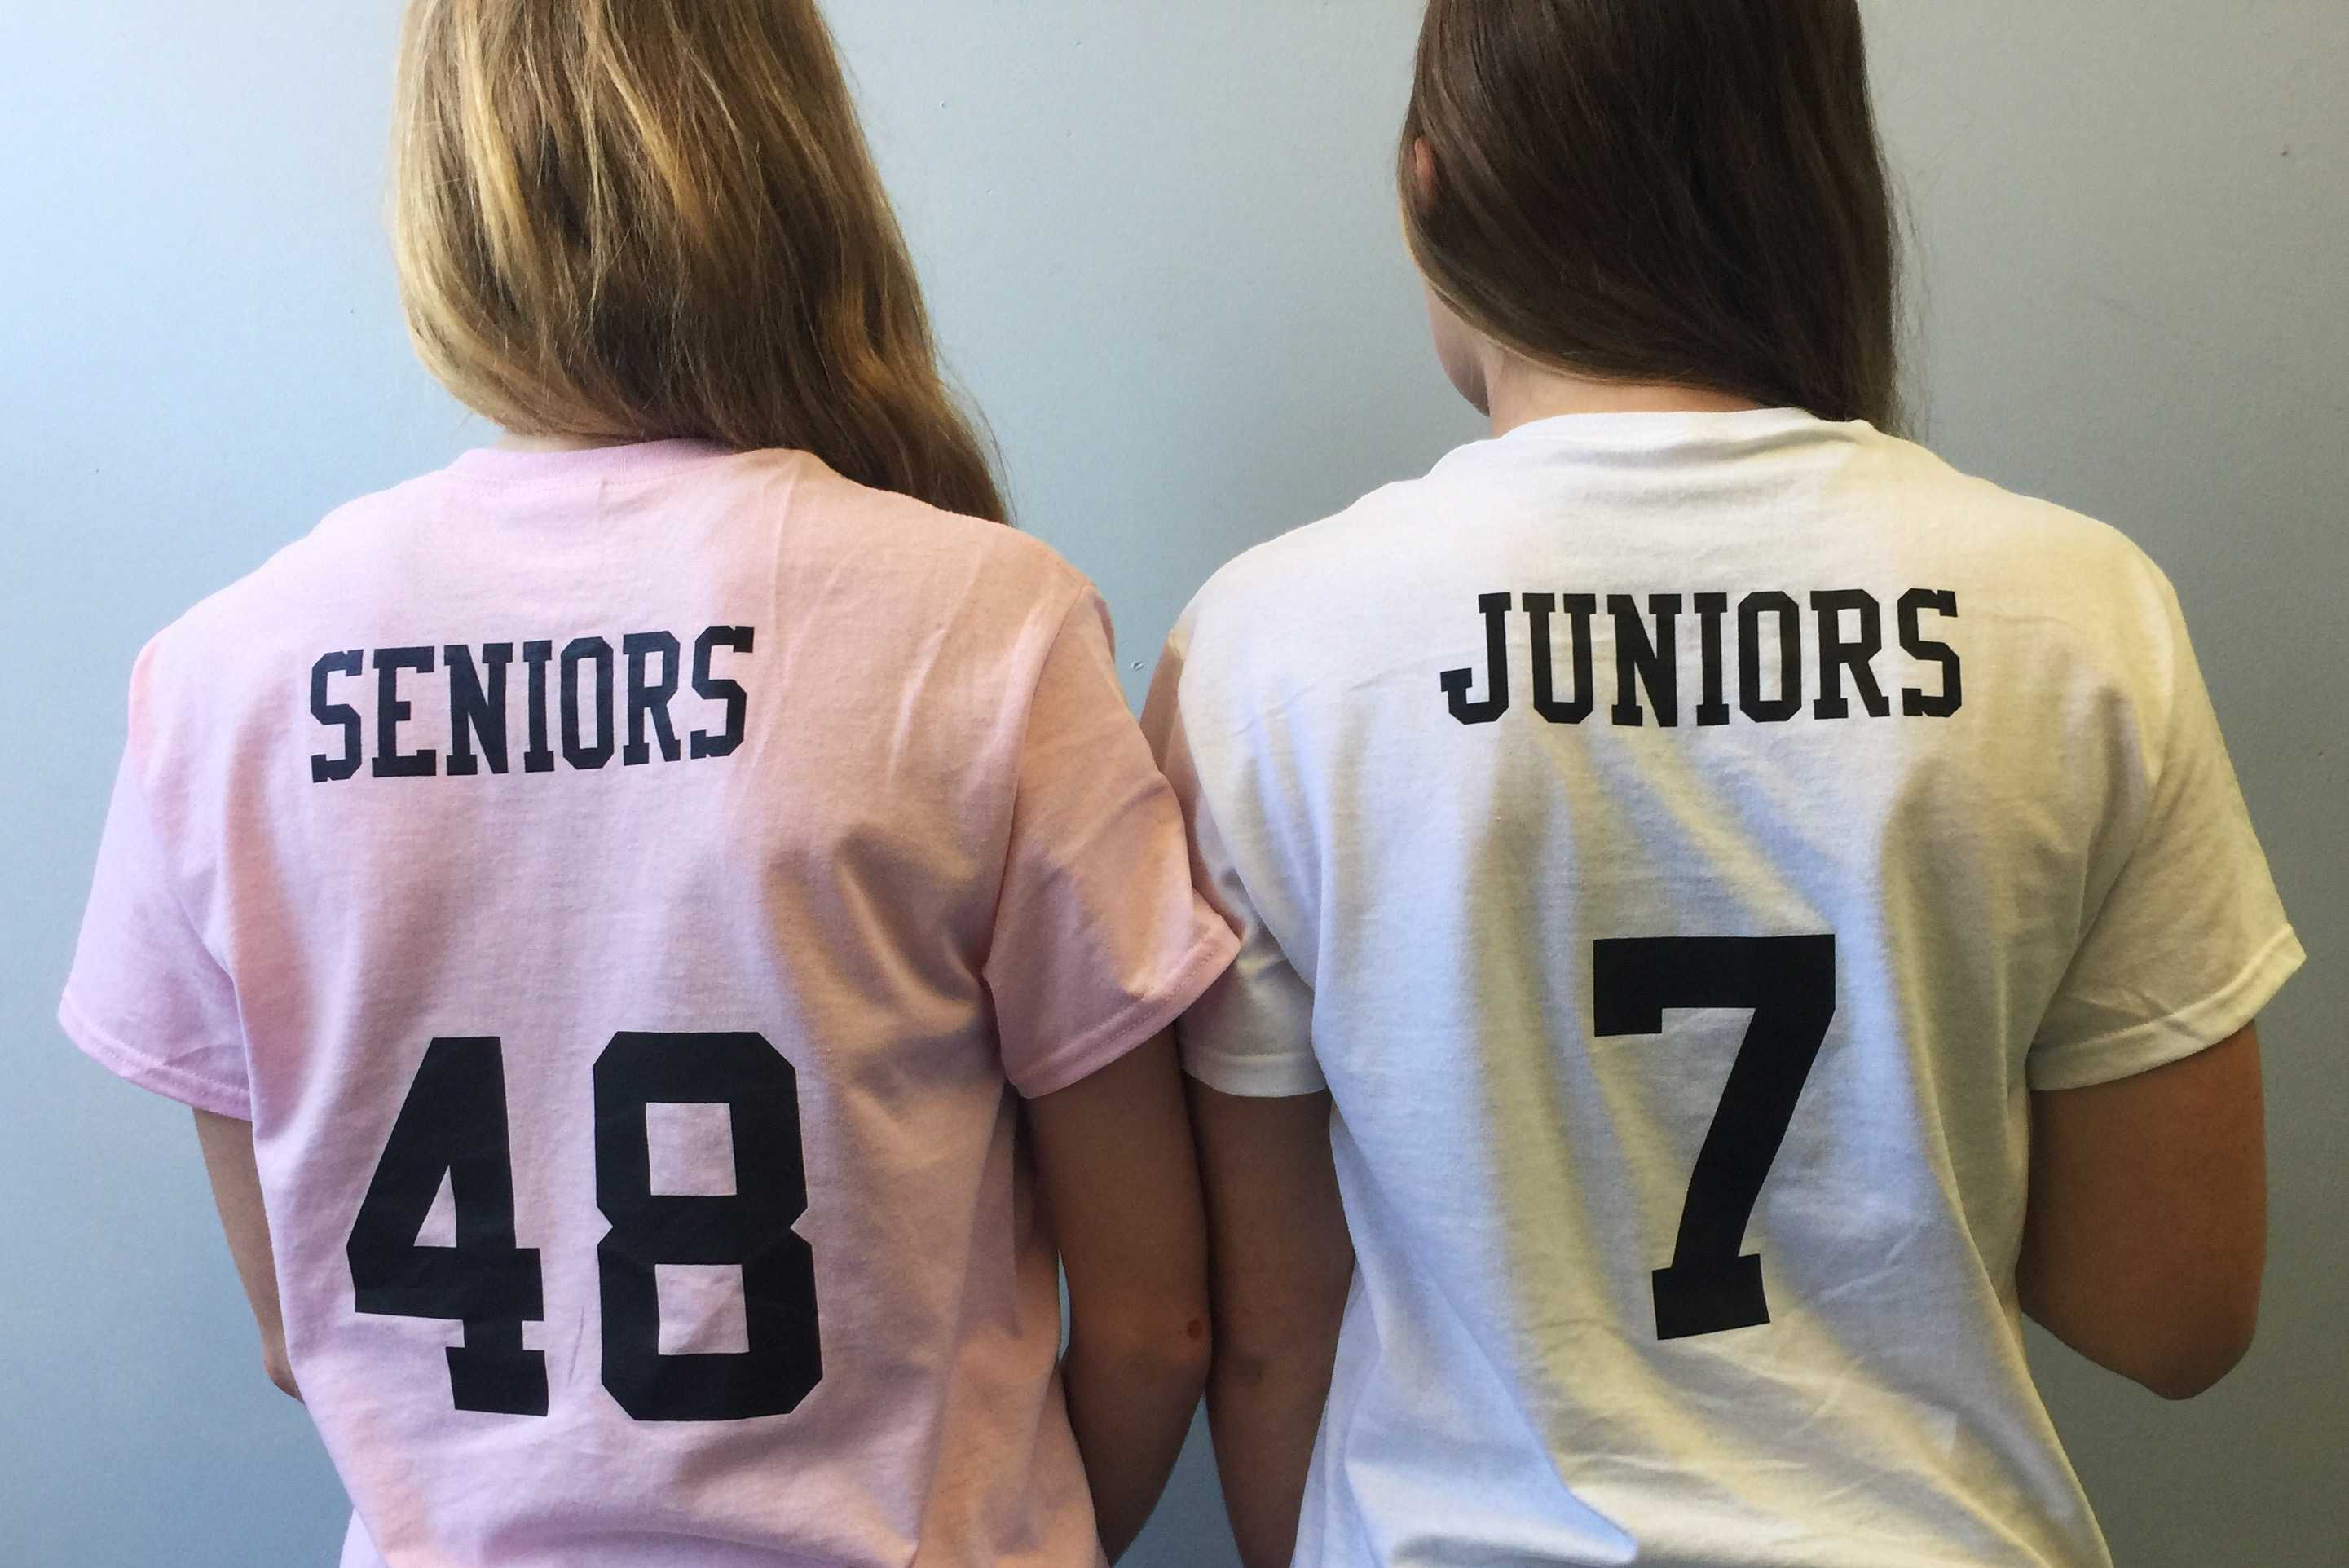 Juniors and seniors stand together as they prepare for the powderpuff game.